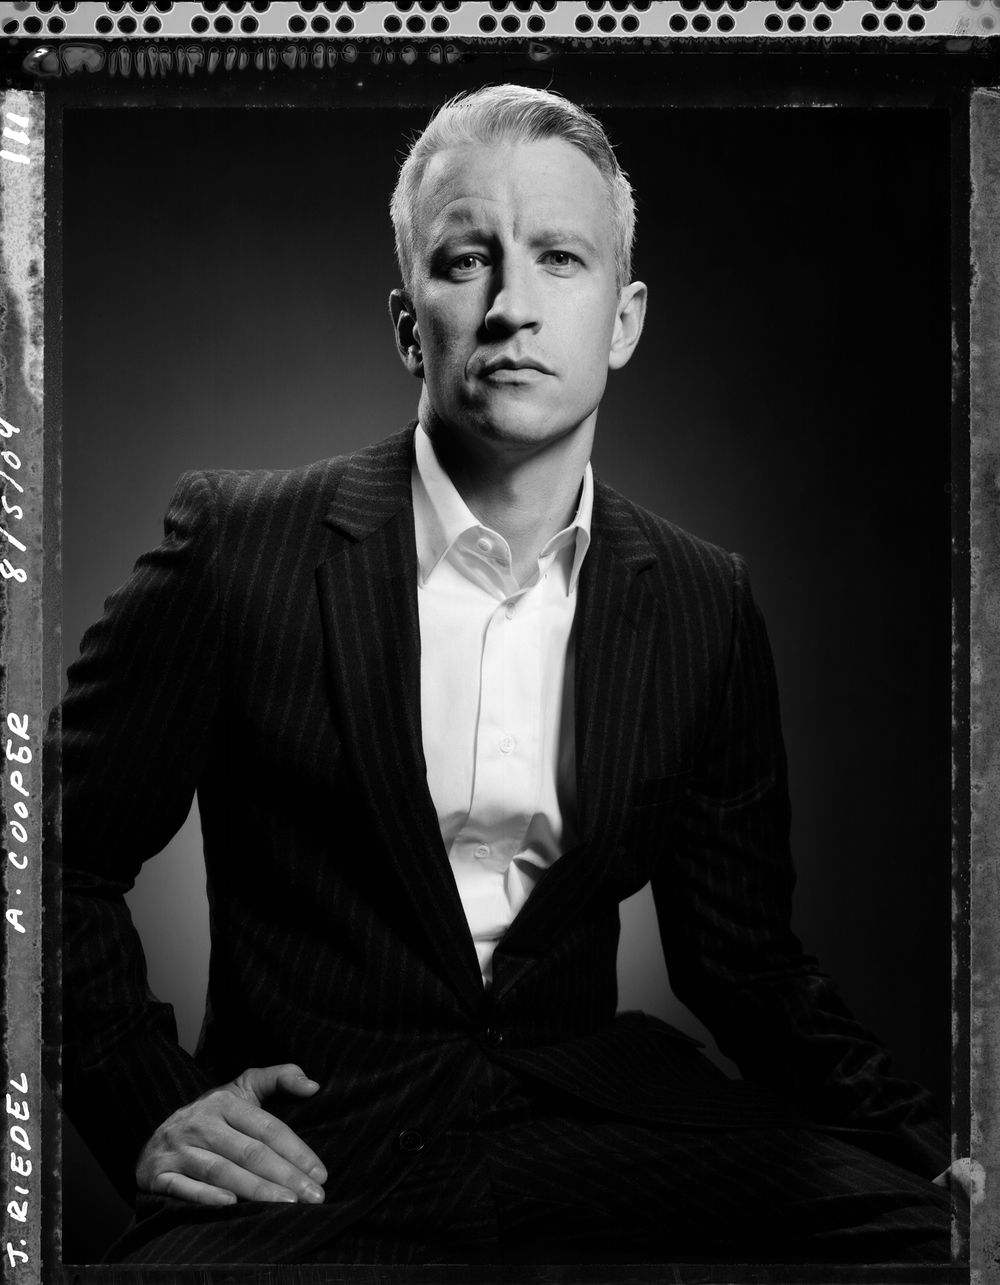 Anderson Cooper - NYC